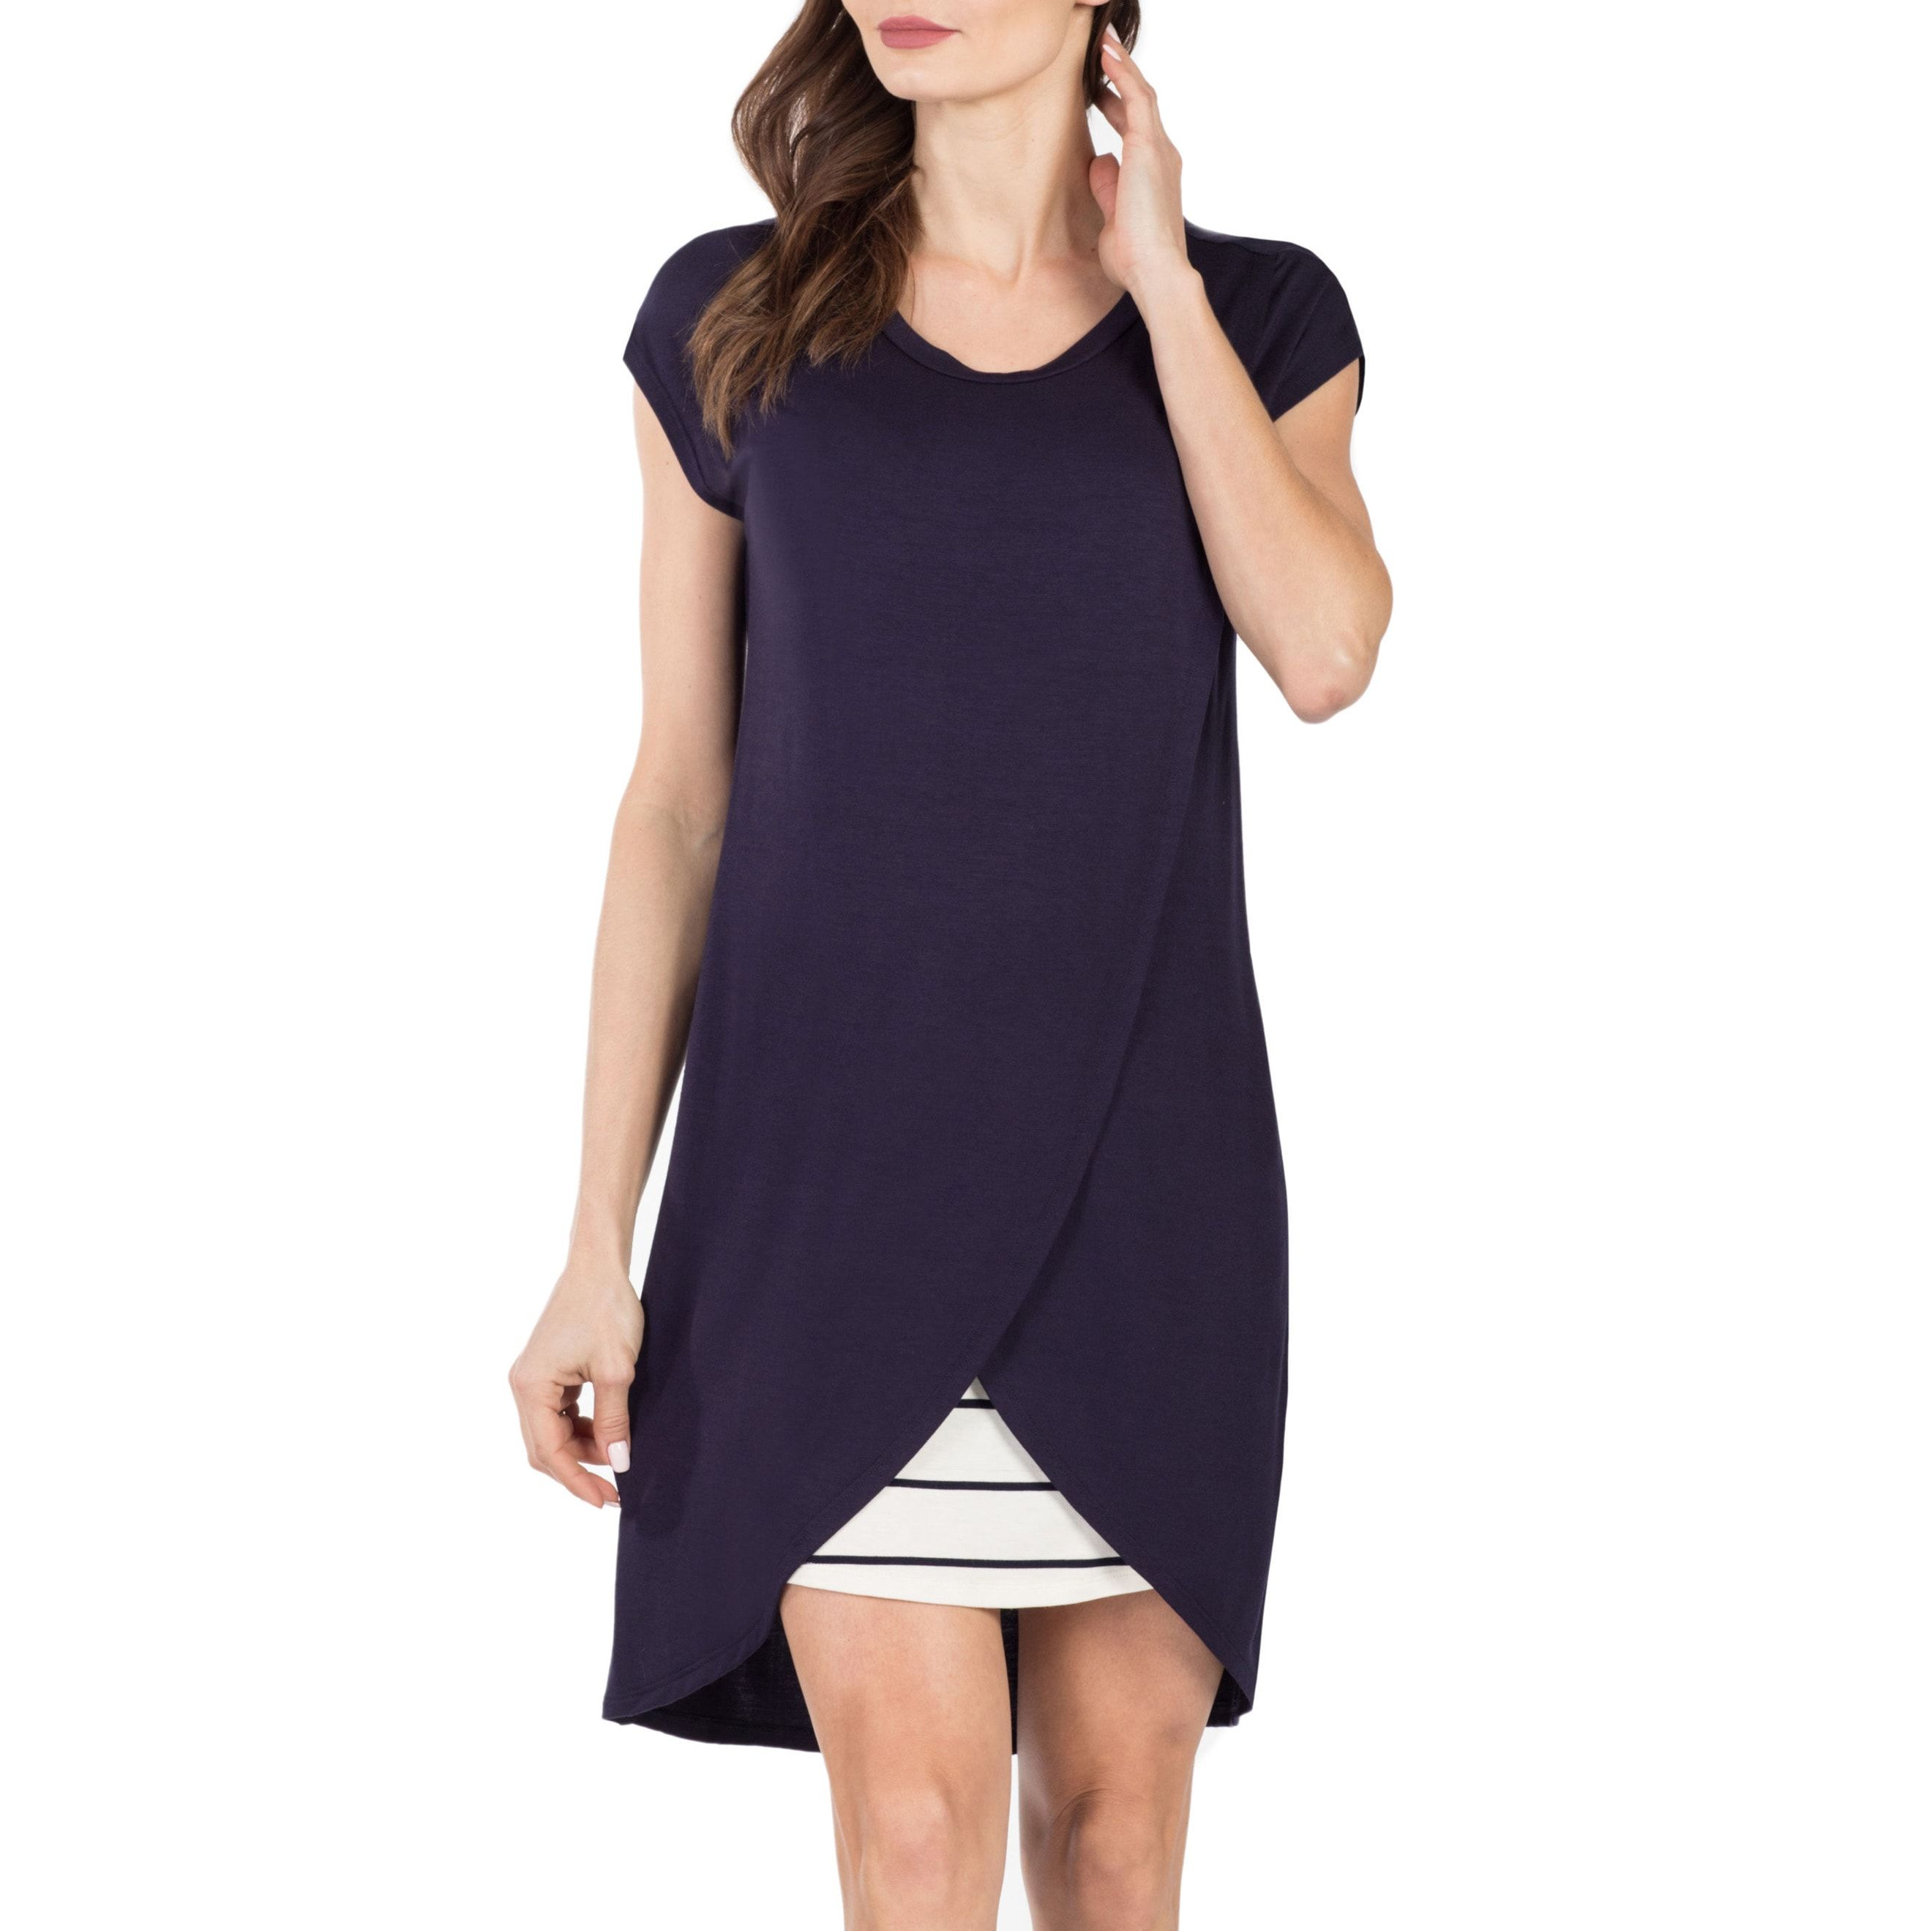 Lille Layered Sheath Dress SAVI MOM nordstrom.com $49.00 SHOP NOW This modern twist on a classic sheath dress is super flattering for new moms and even has hidden nursing panels for her convenience. She can wear it anywhere, anytime—so major score.